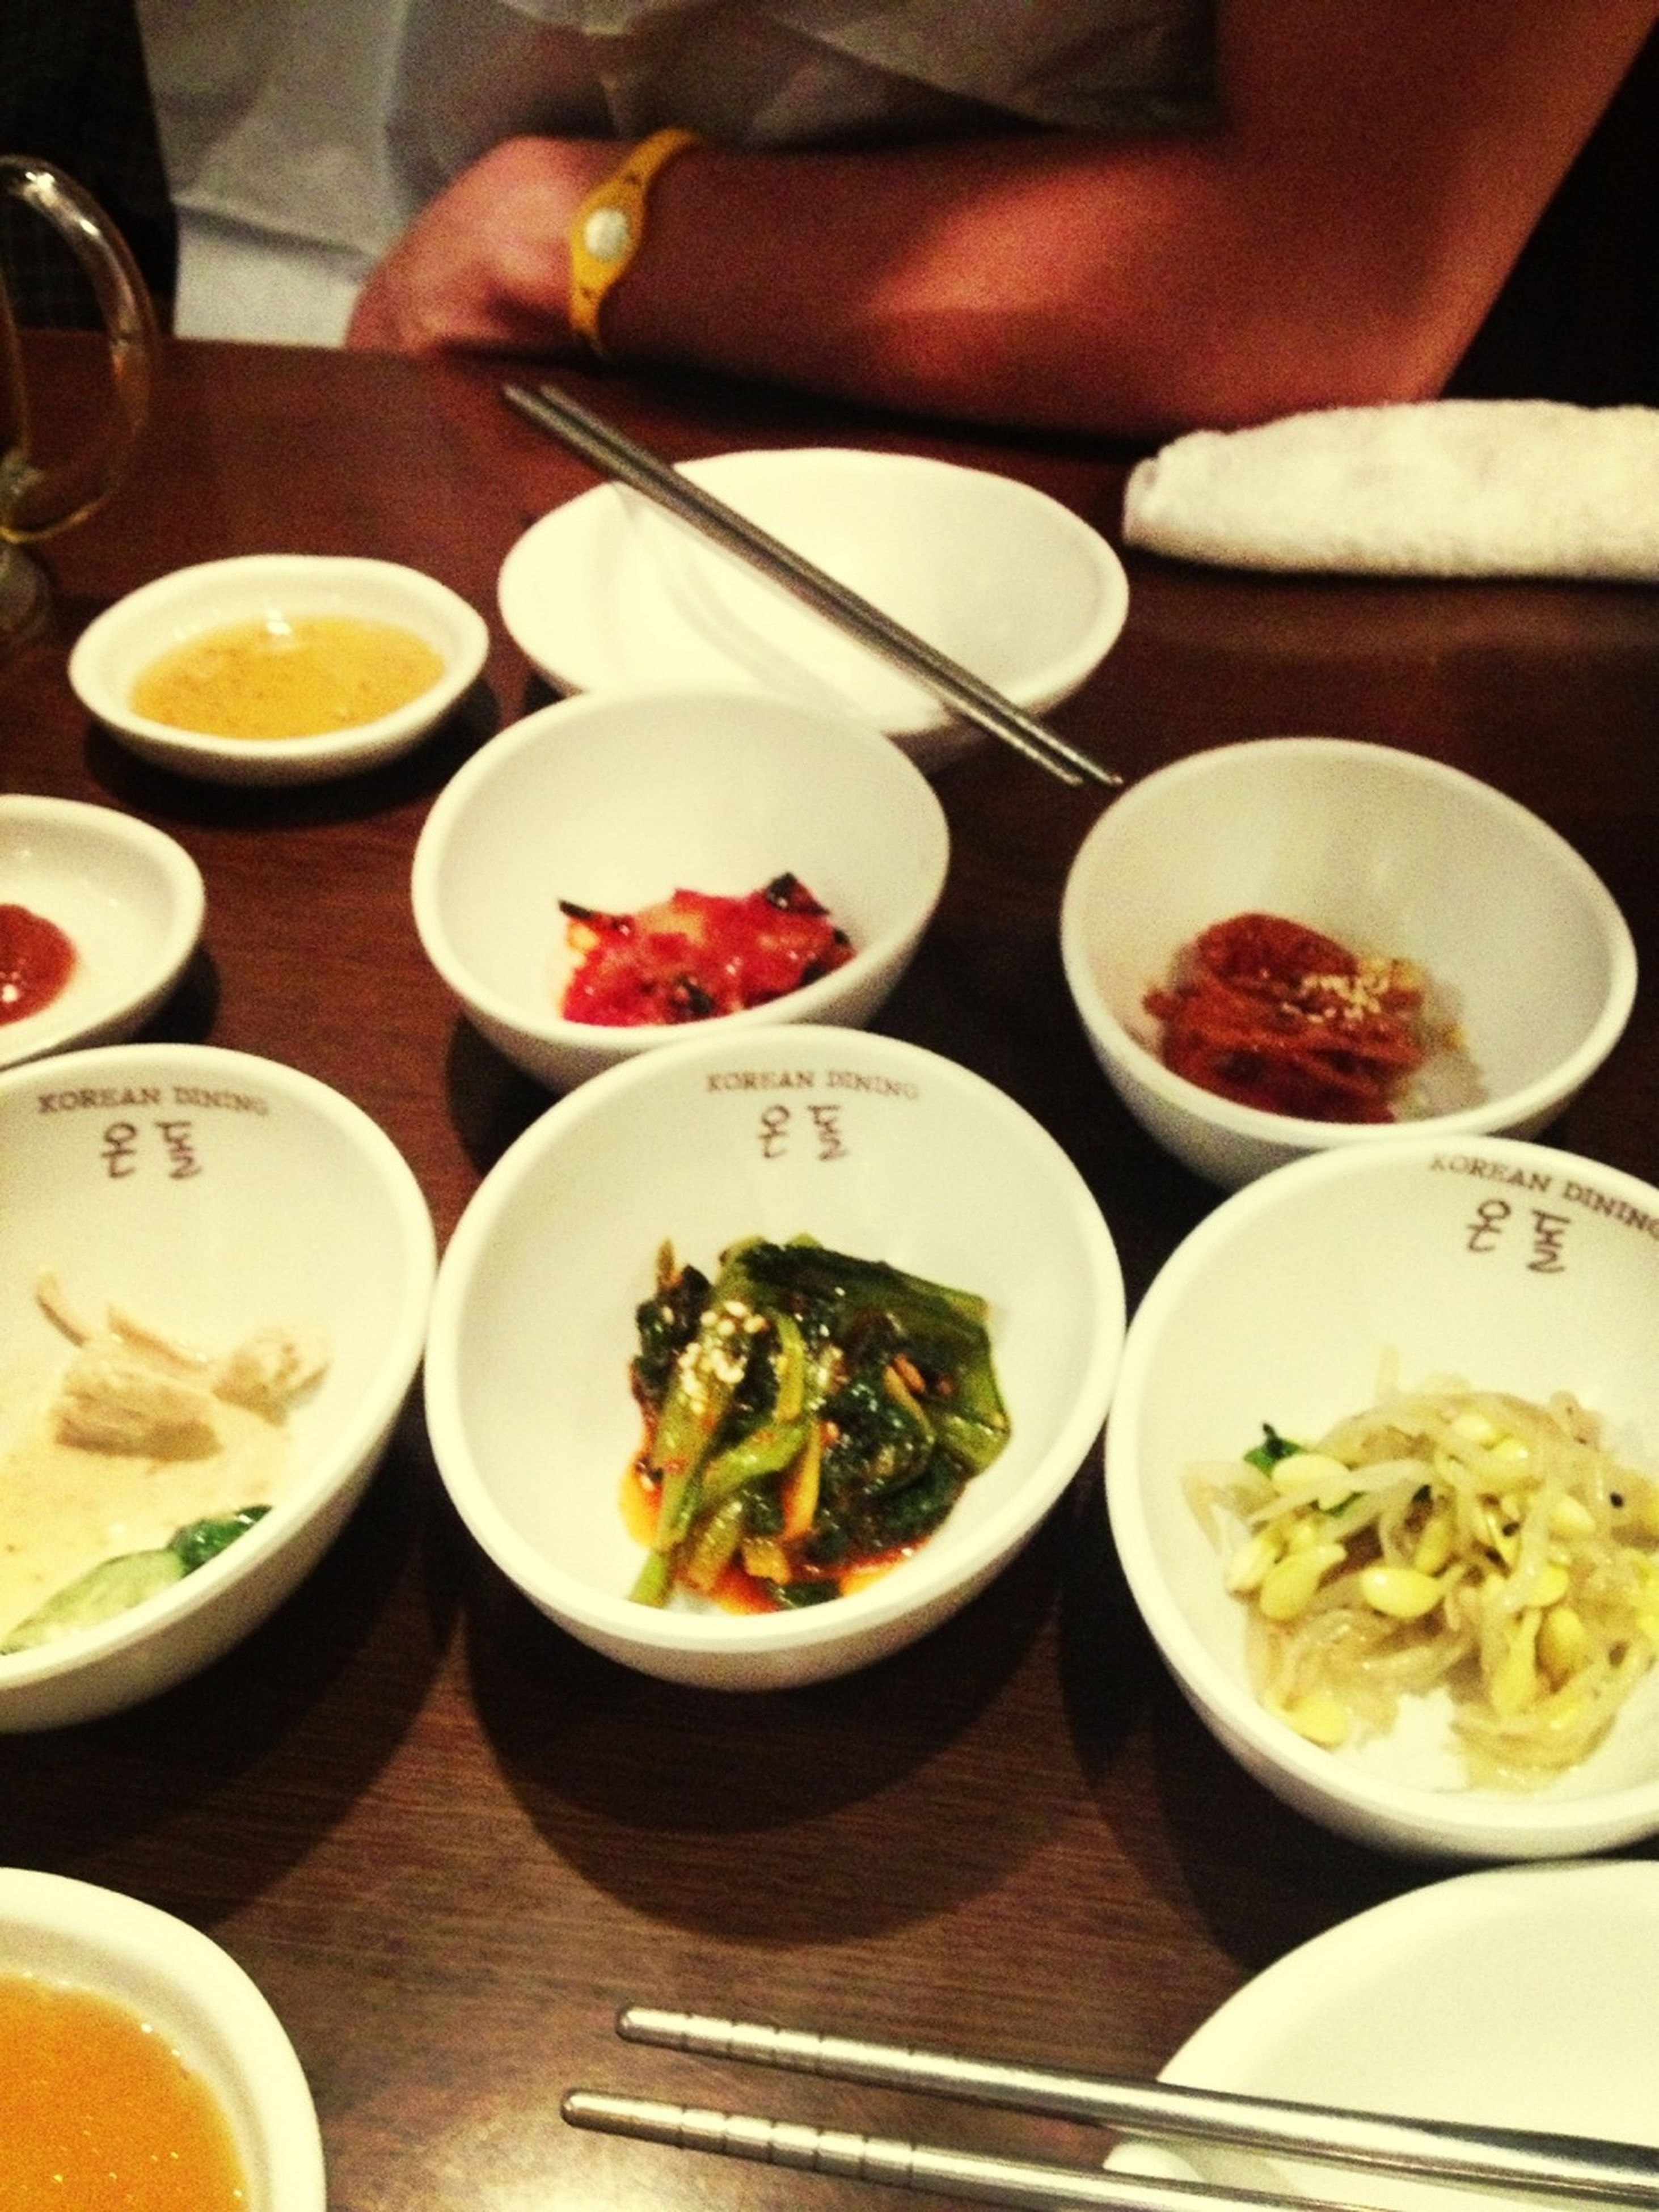 food and drink, indoors, food, freshness, table, plate, ready-to-eat, bowl, healthy eating, meal, still life, serving size, high angle view, close-up, spoon, noodles, vegetable, chopsticks, indulgence, served